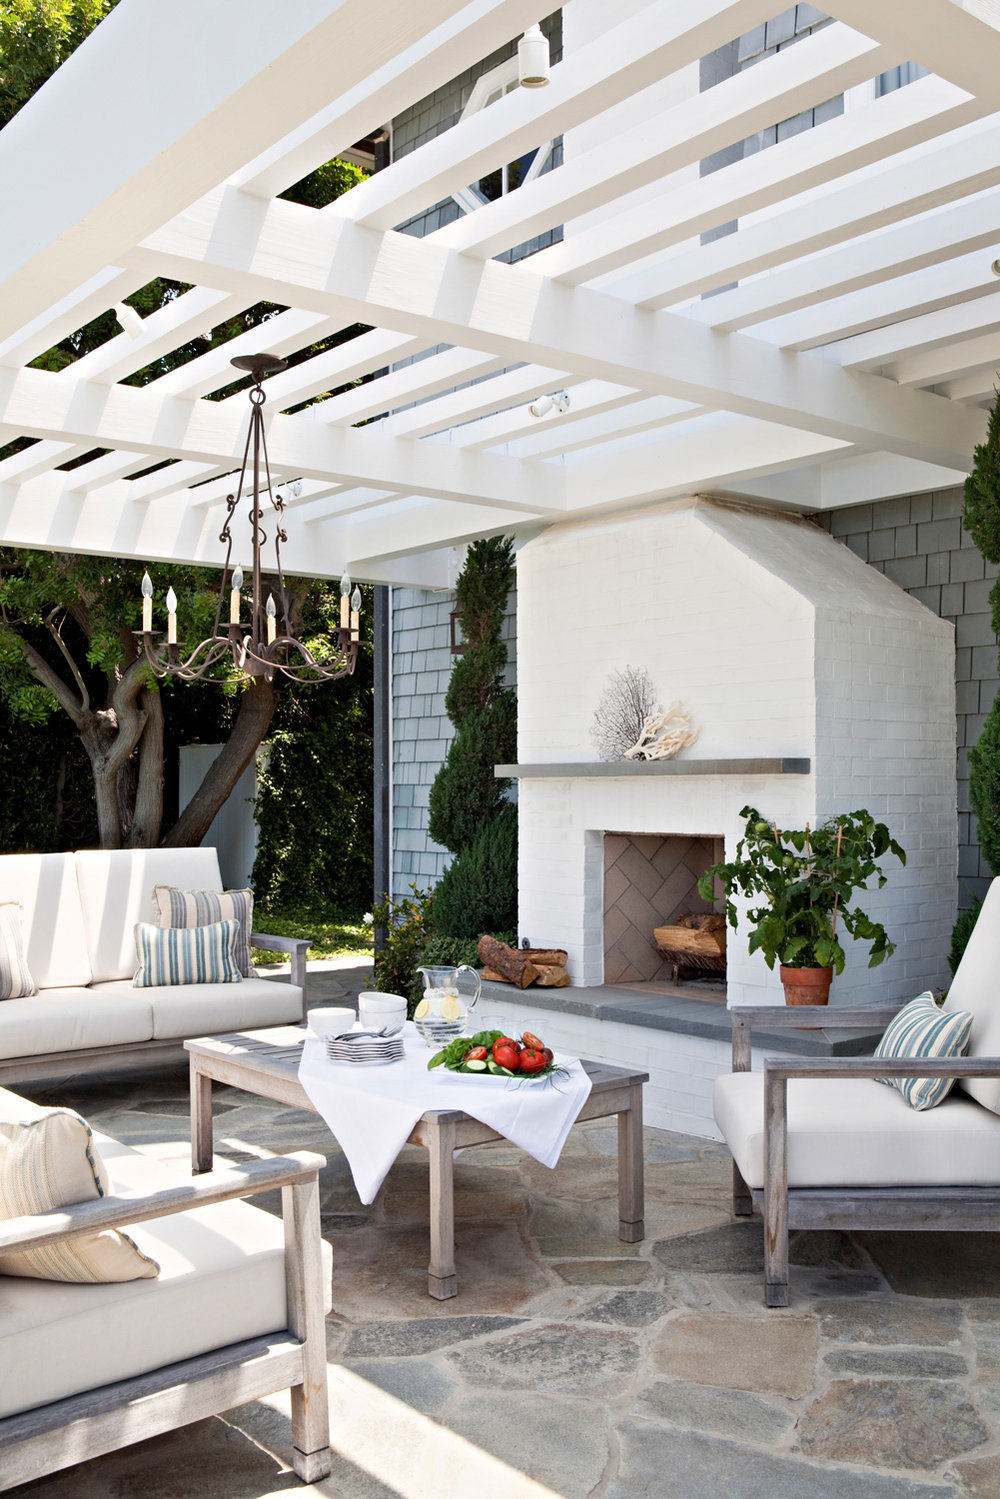 The Most Beautiful Pergola Design Ideas For The Upcoming Summer